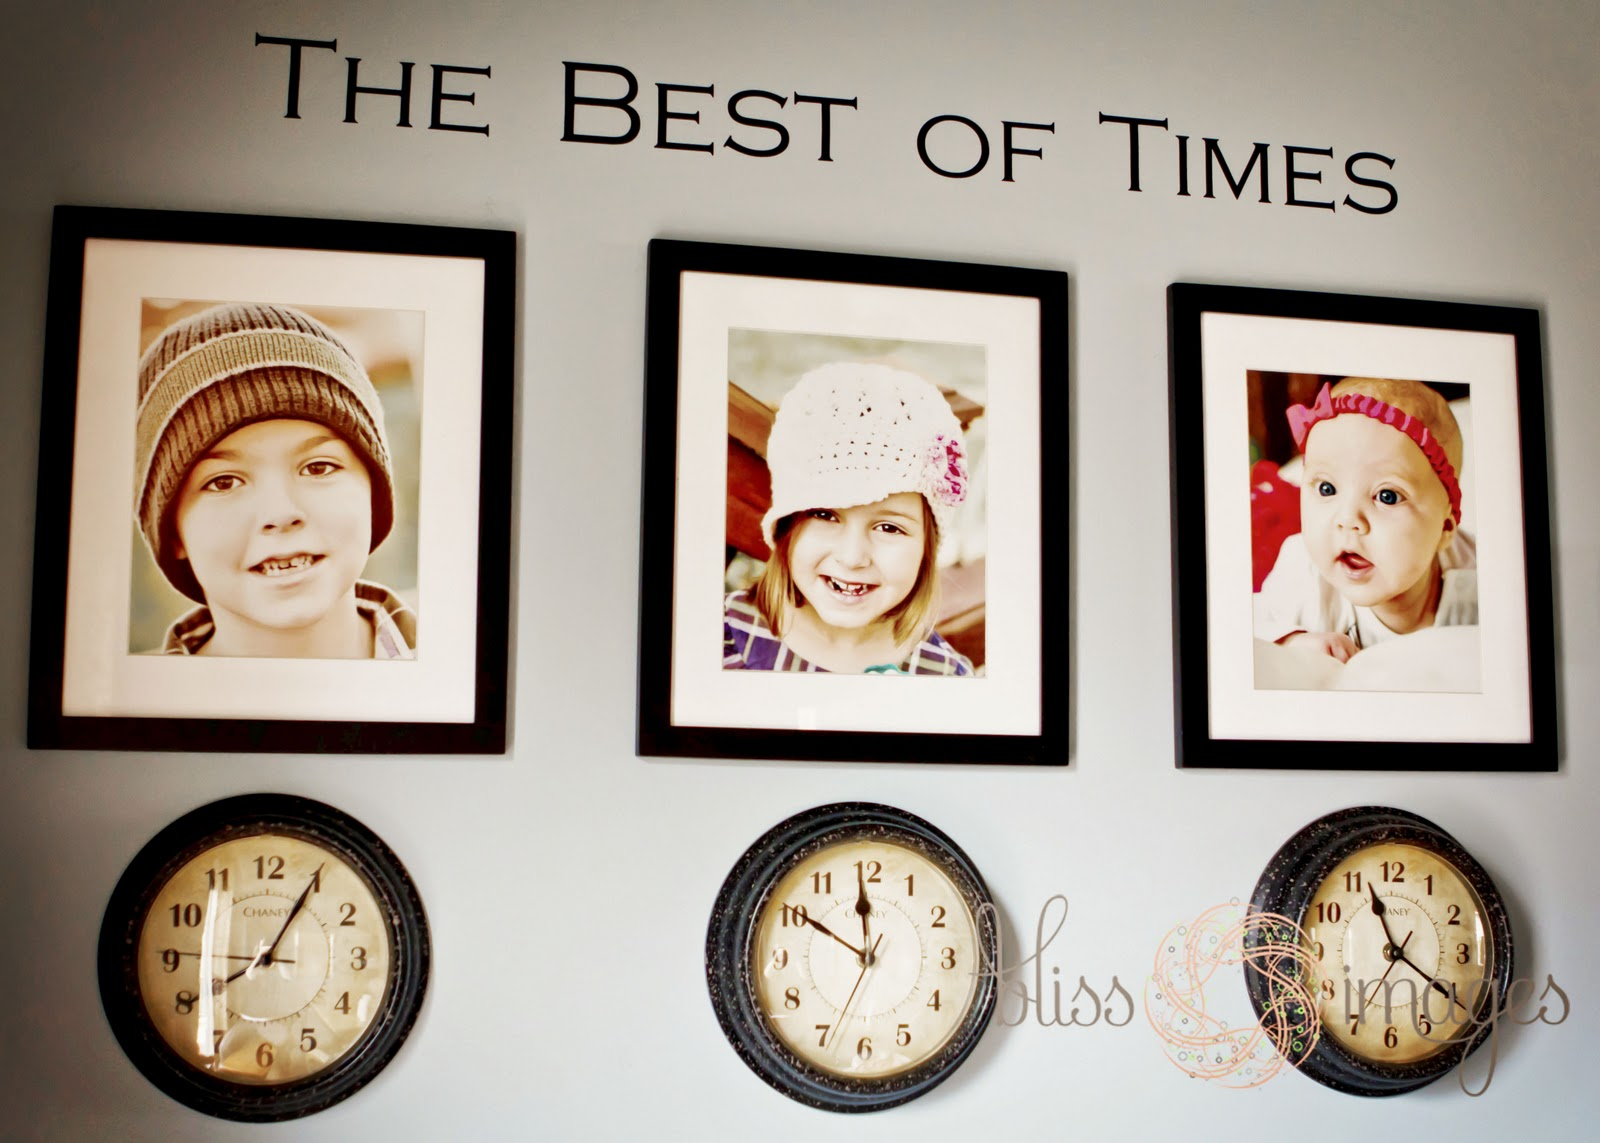 Creative Ways To Display Quotes: It's Written On The Wall: Unique Ways To Display Your